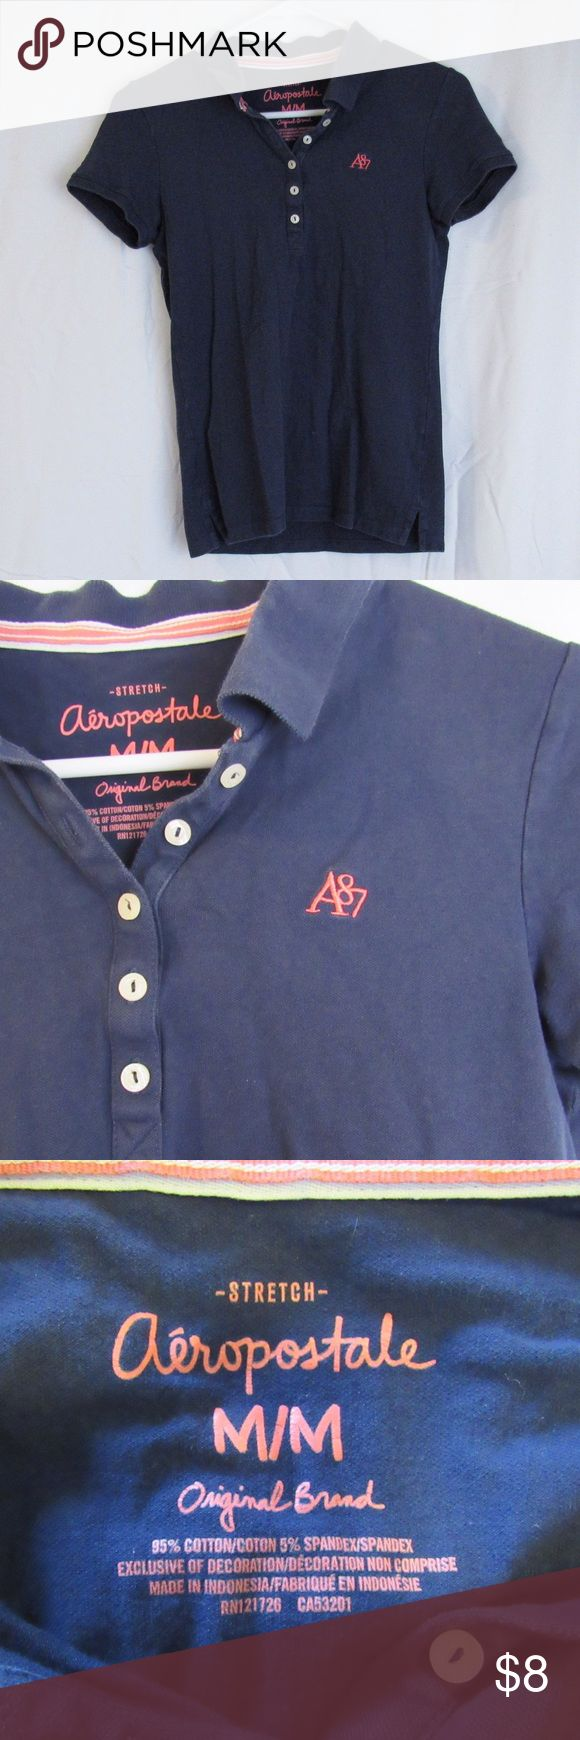 Navy Polo Collared Shirt Navy polo shirt from Aeropostale. Perfect for school uniforms or golfing! Smoke and pet free! (I have a couple more colors that I will be uploading soon. Comment if you are interested in the other colors too!) Aeropostale Tops